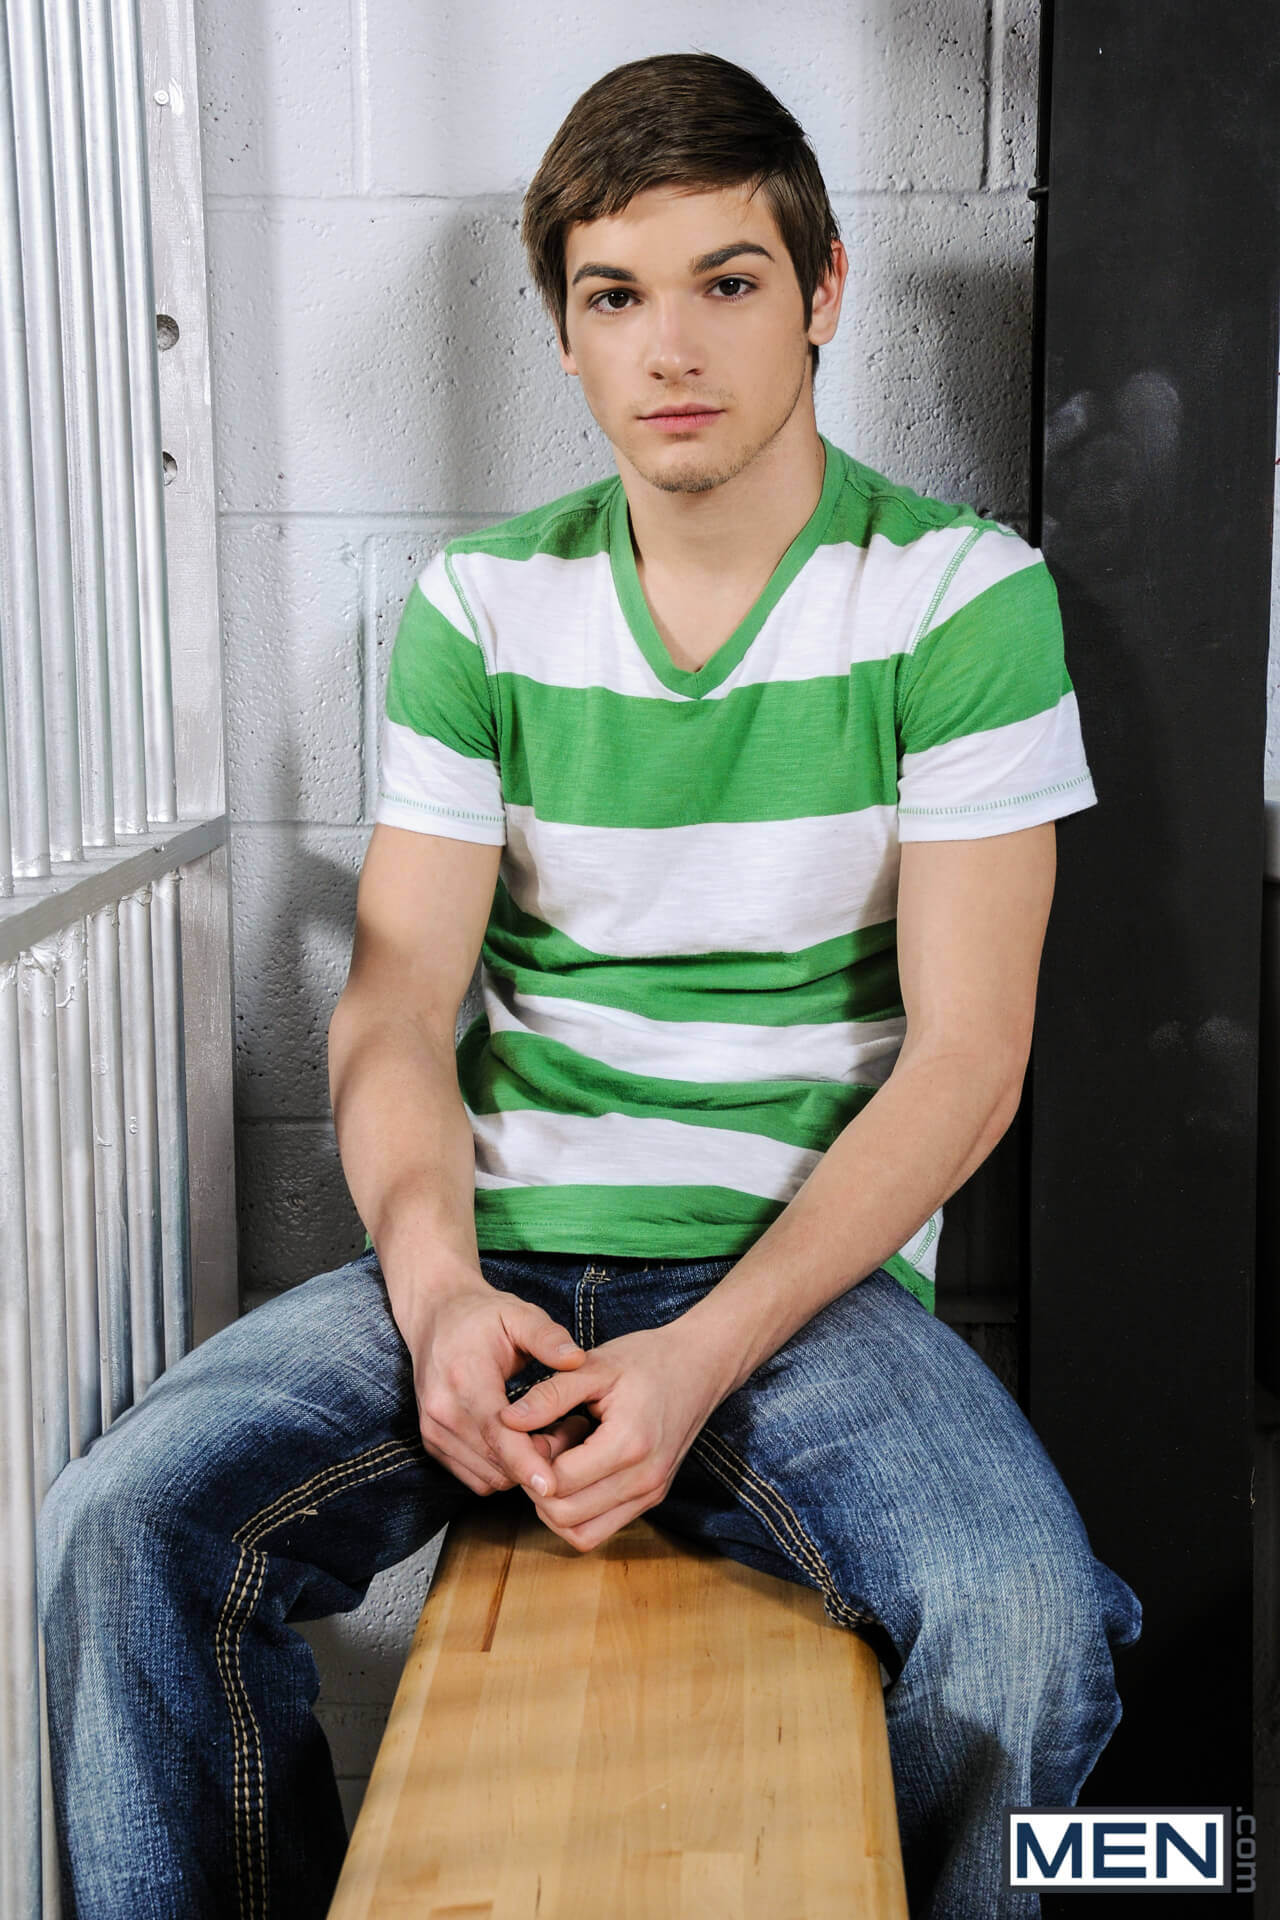 men str8 to gay the tank cooper reed johnny rapid gay porn blog image 1